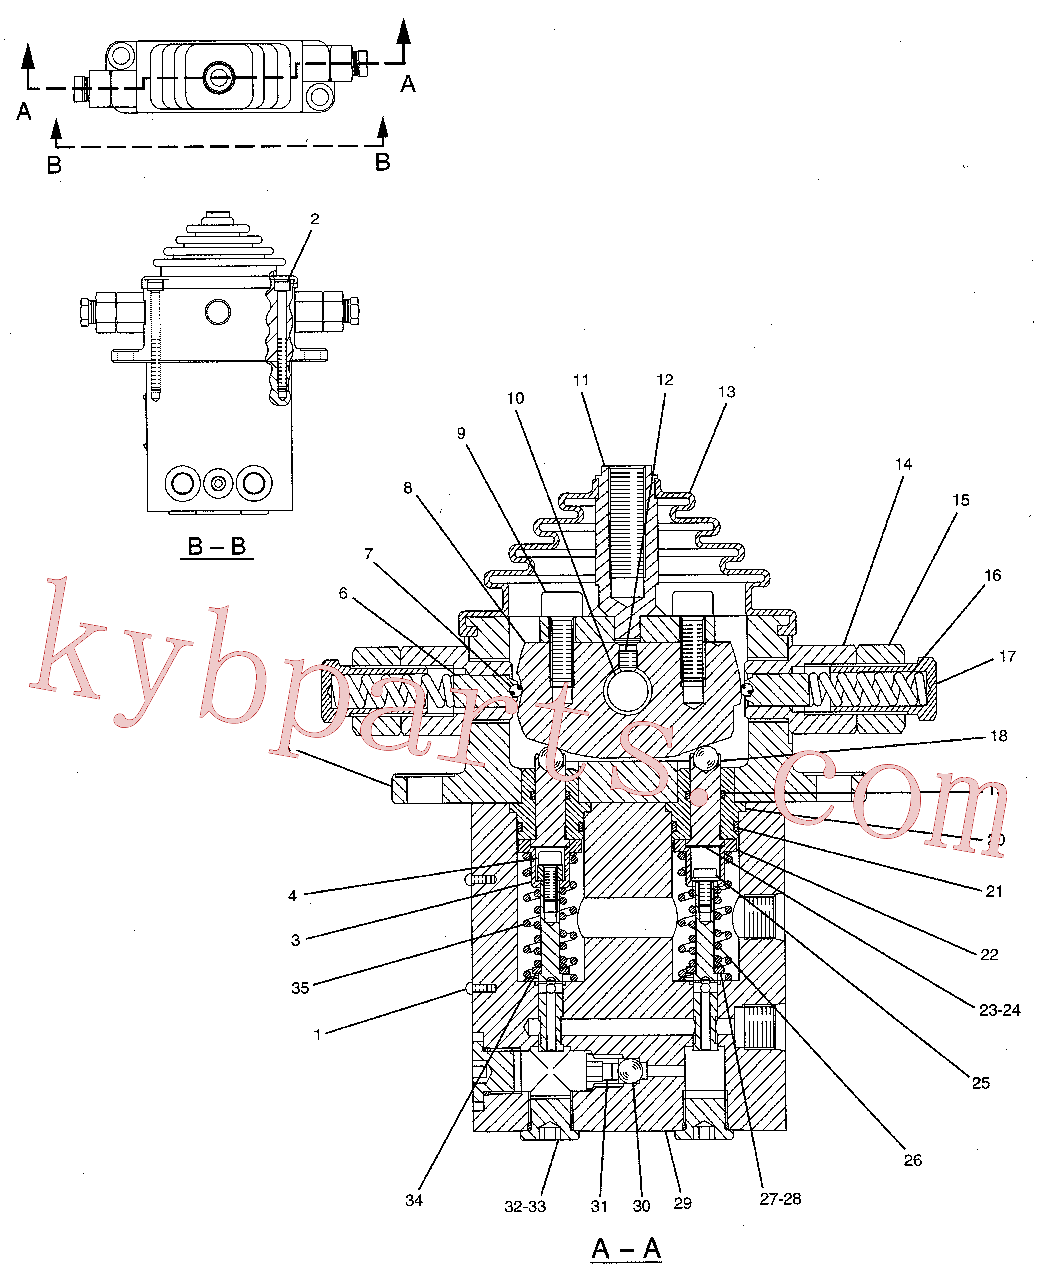 CAT 198-8178 for 312D2 L Excavator(EXC) hydraulic system 190-7695 Assembly